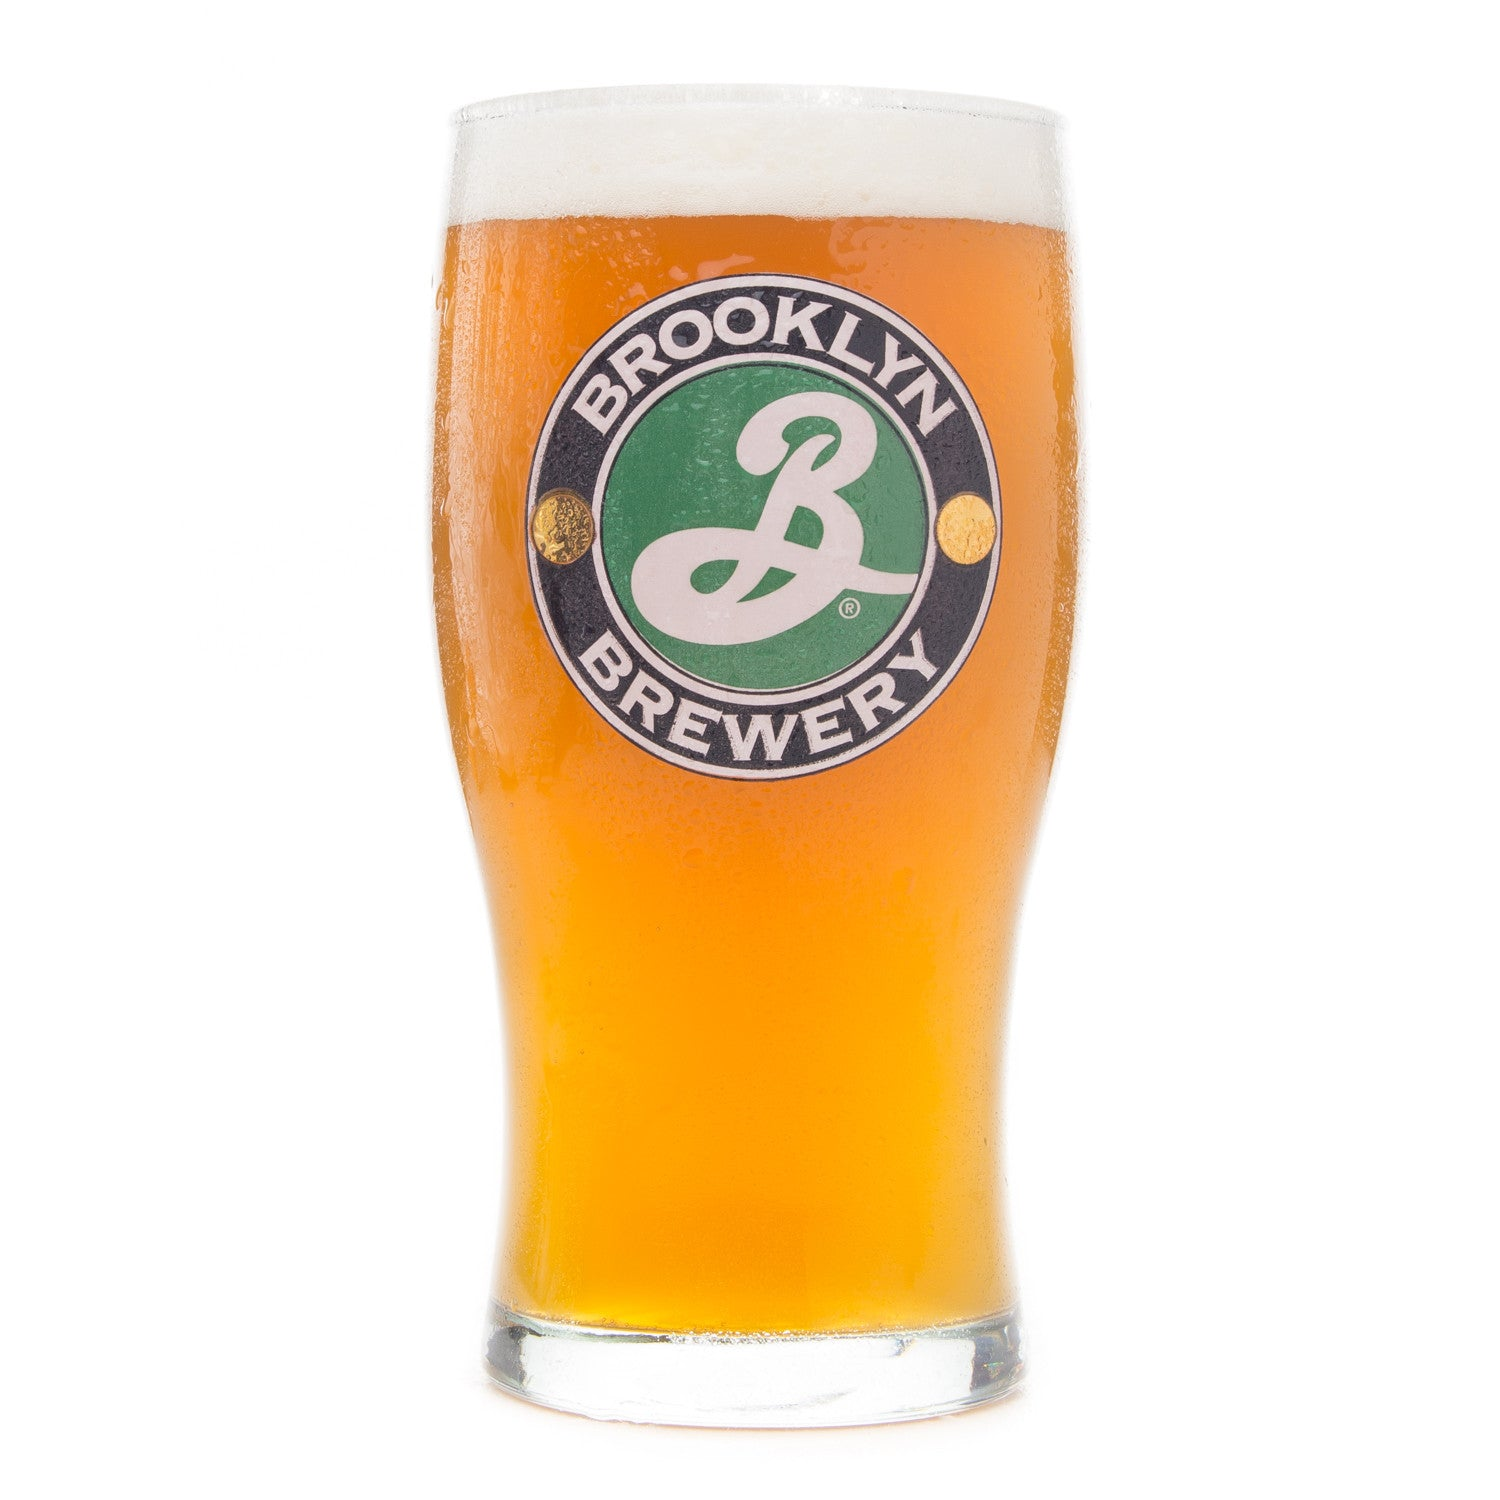 Brooklyn brewery imperial pint glass38 59117646 49f0 45d1 a912 211dbadb4c1a.jpg?v=1469547043